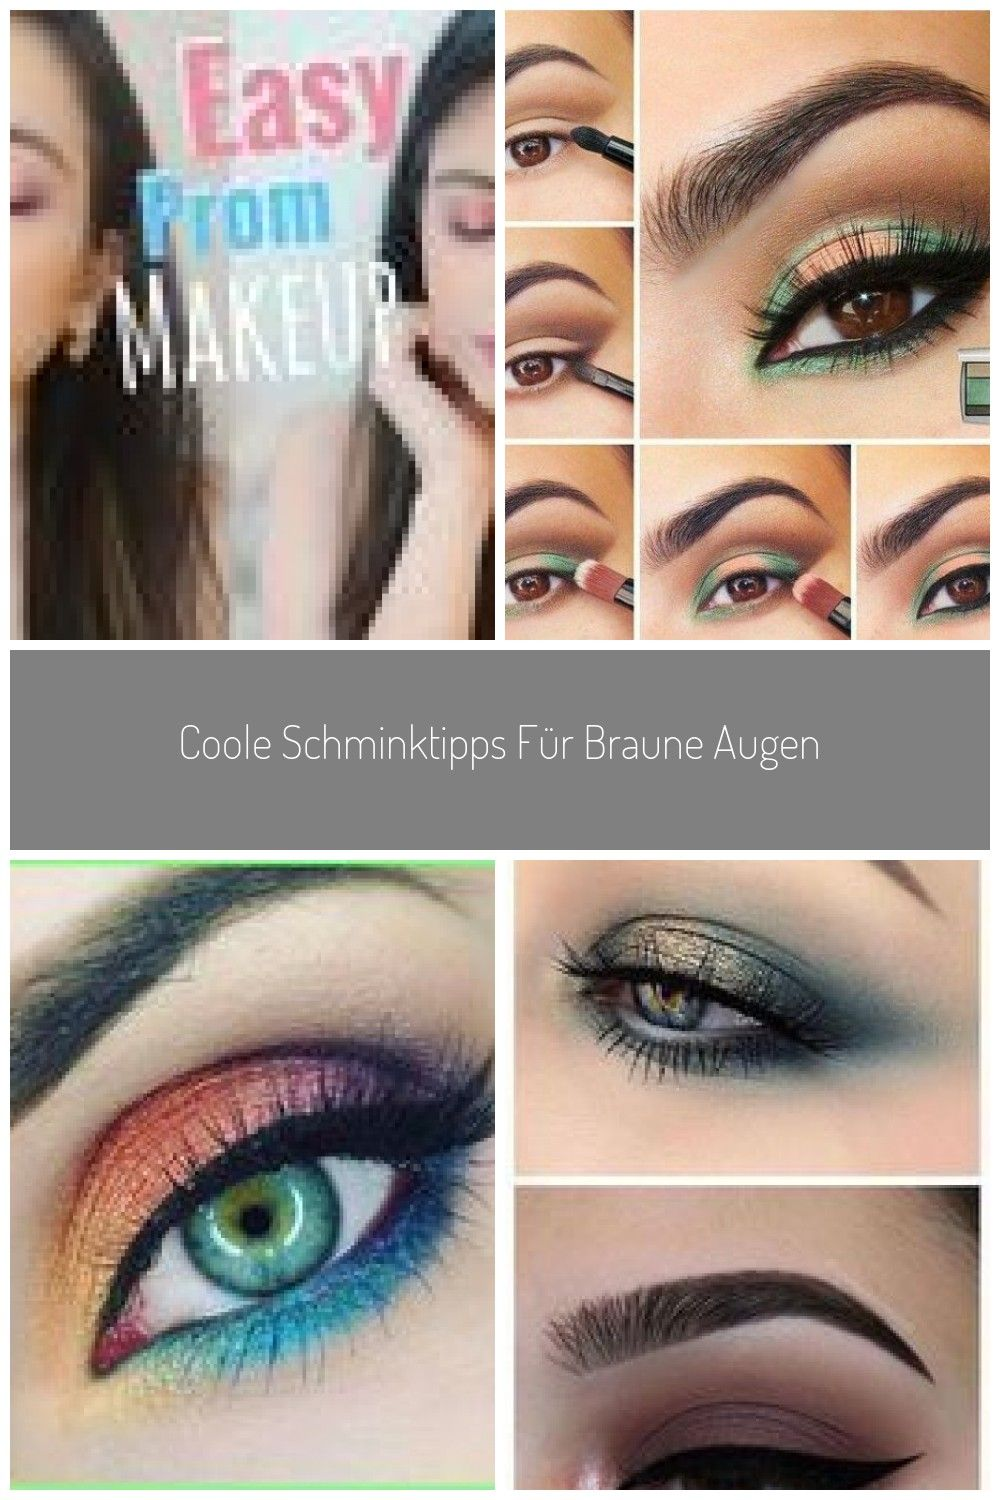 How To Easy Prom Makeup Colorful Eye Makeup Tutorial Step By Step With Affordable Products Affordable Colorful Easy Eye Make In 2020 Augenbrauen Augen Brauen